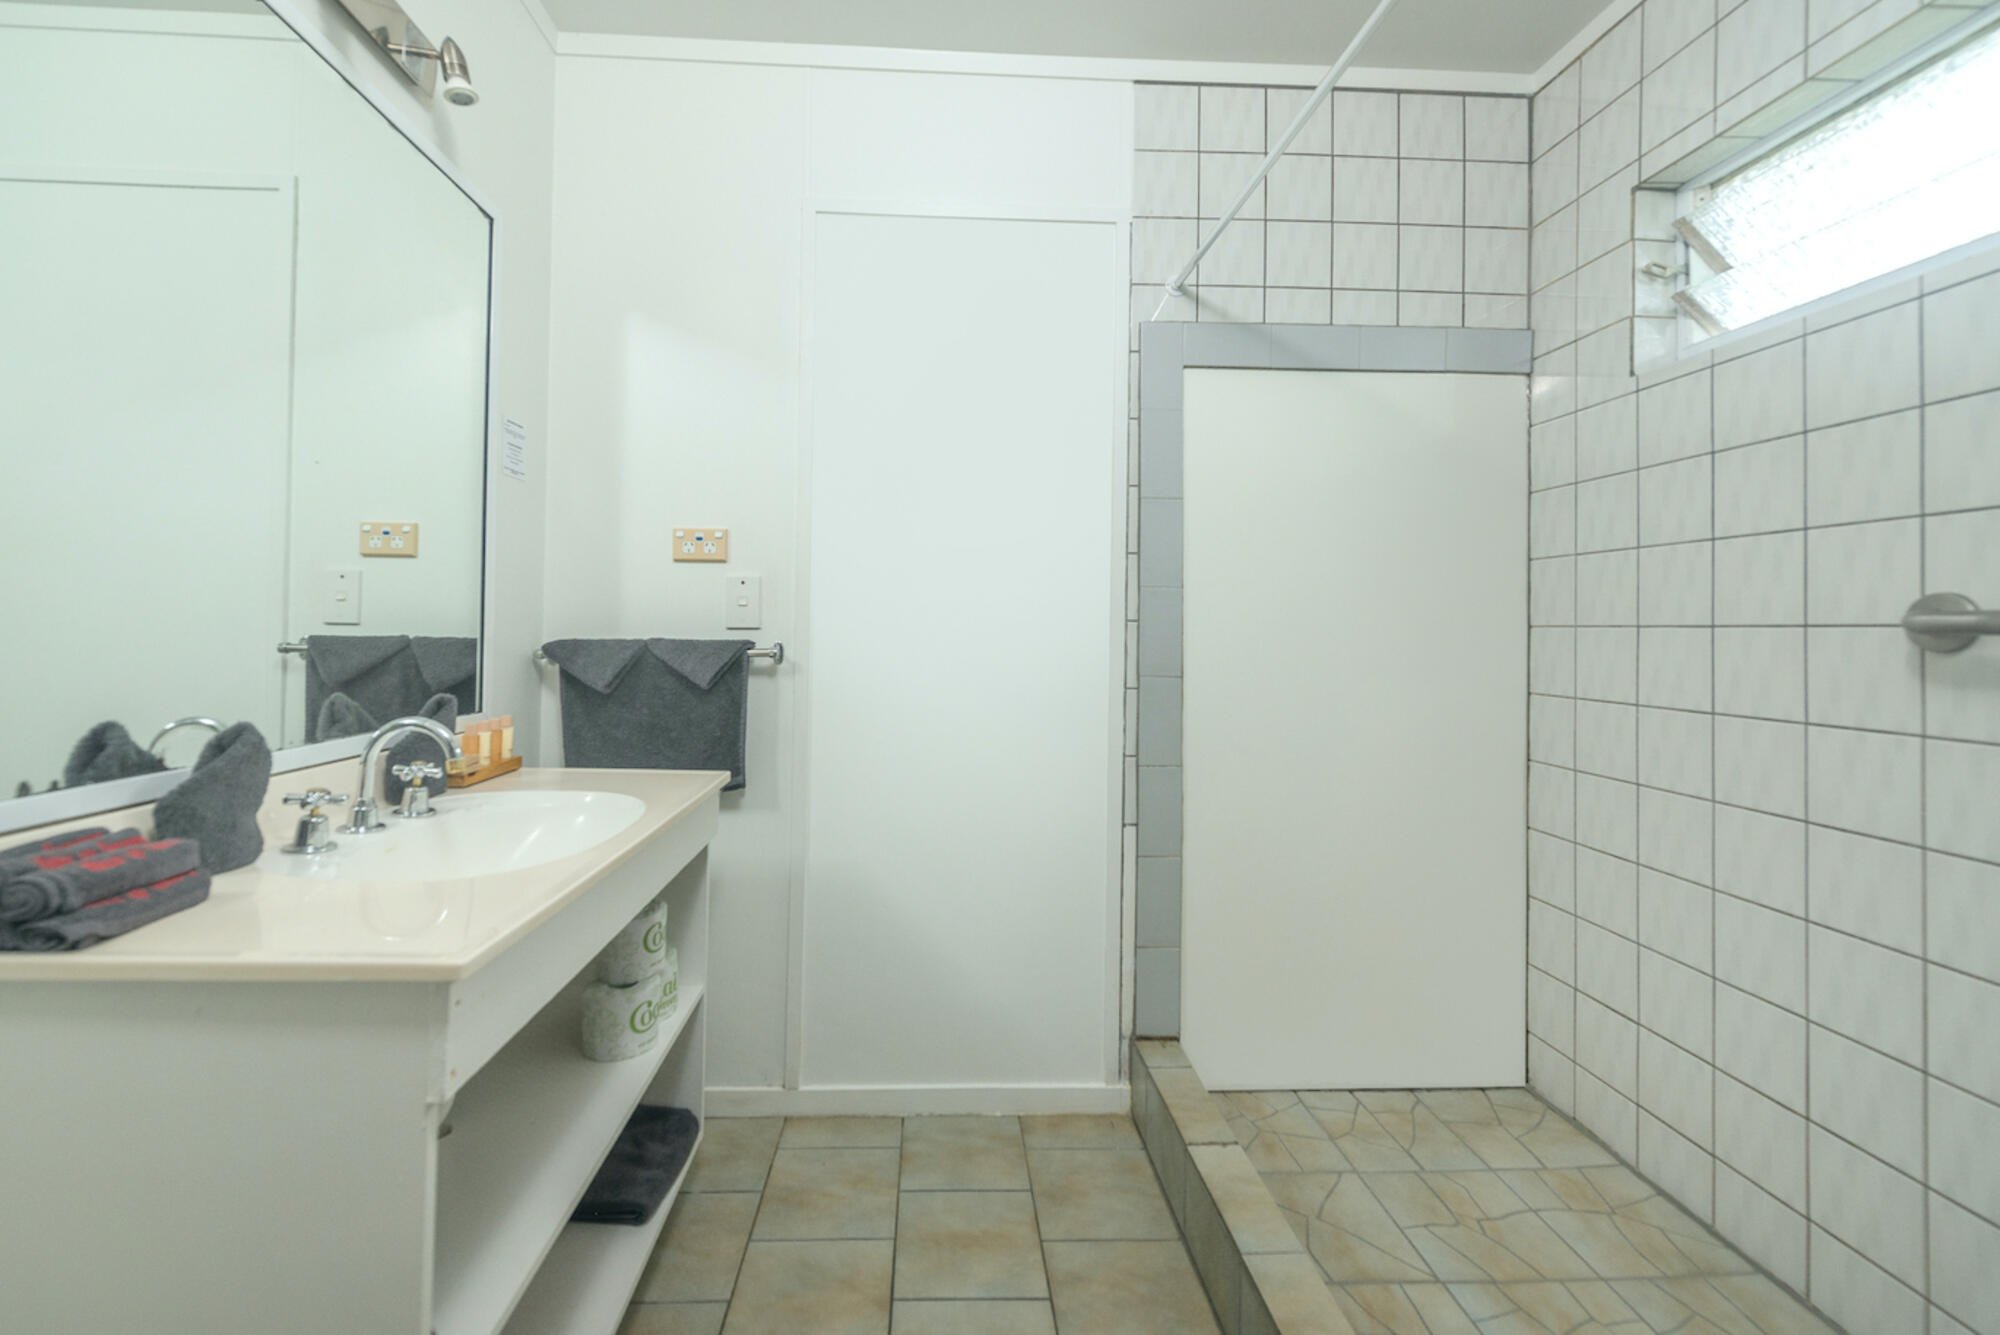 Unit 5 bathroom